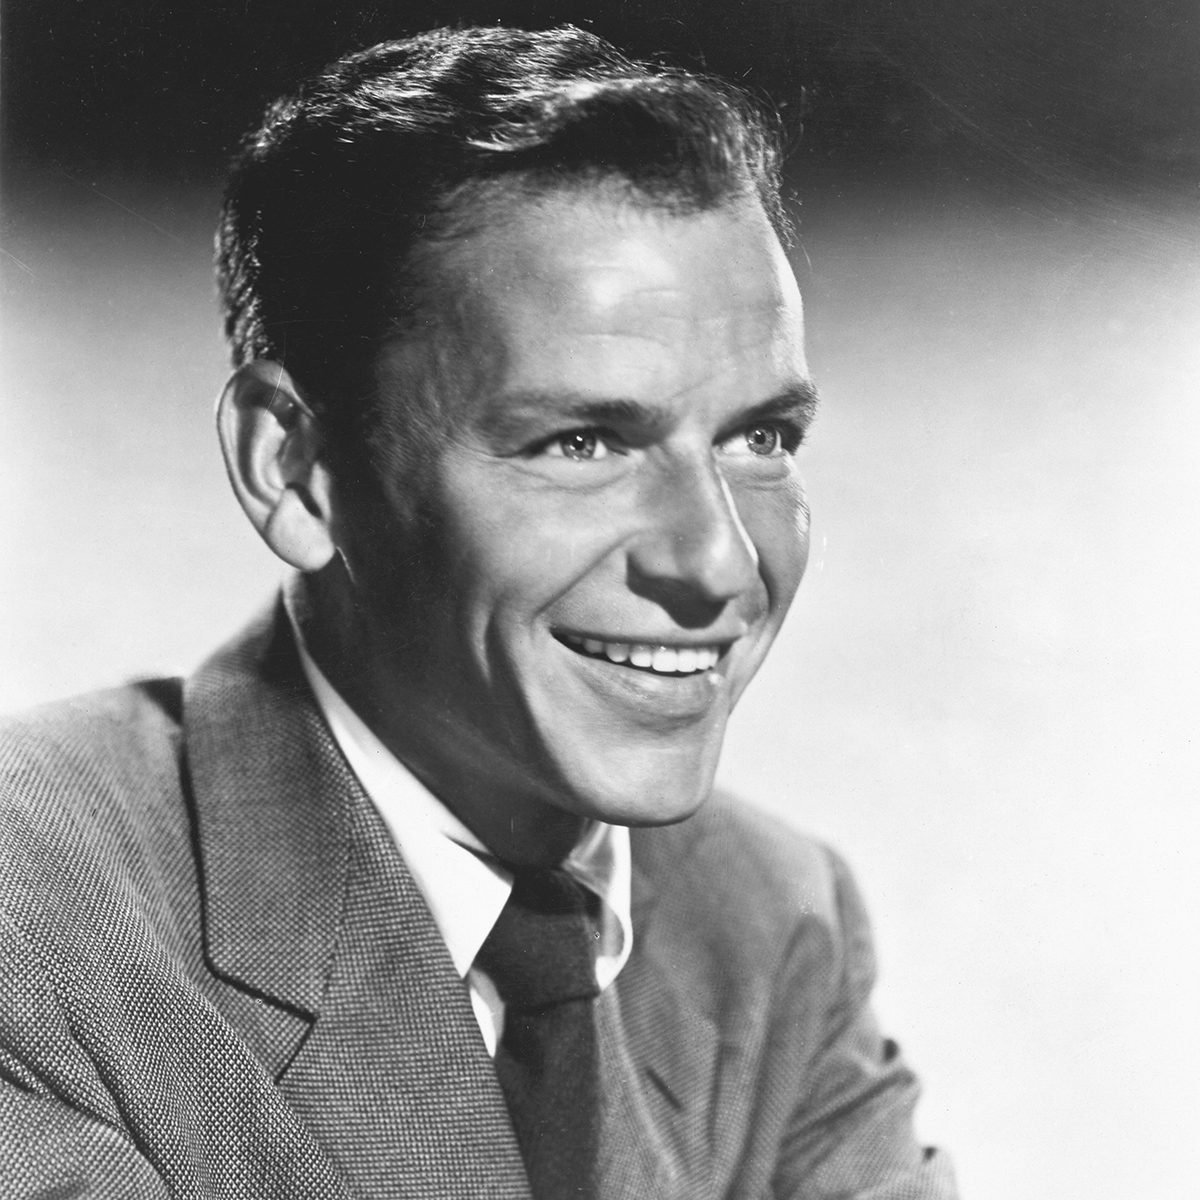 Mandatory Credit: Photo by Universal History Archive/Shutterstock (3874732a) Frank Sinatra (b1915) American film star and singer VARIOUS